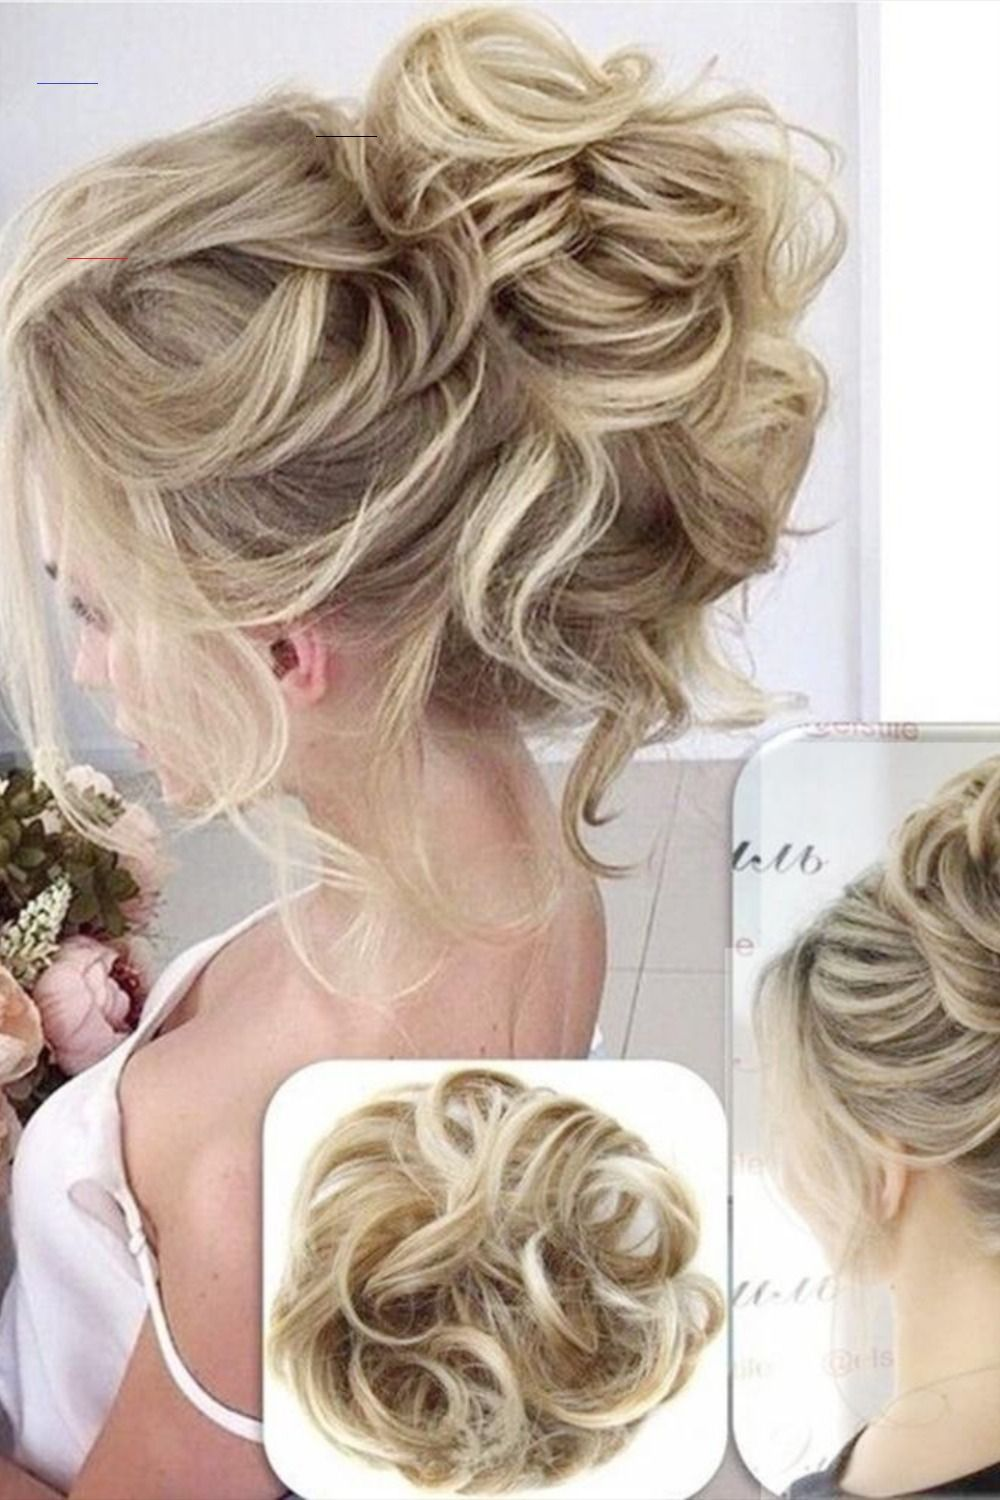 Messy Bun Hair Piece Scrunchie Bunhair In 2020 Bun Hair Piece Bun Hairstyles Hair Piece